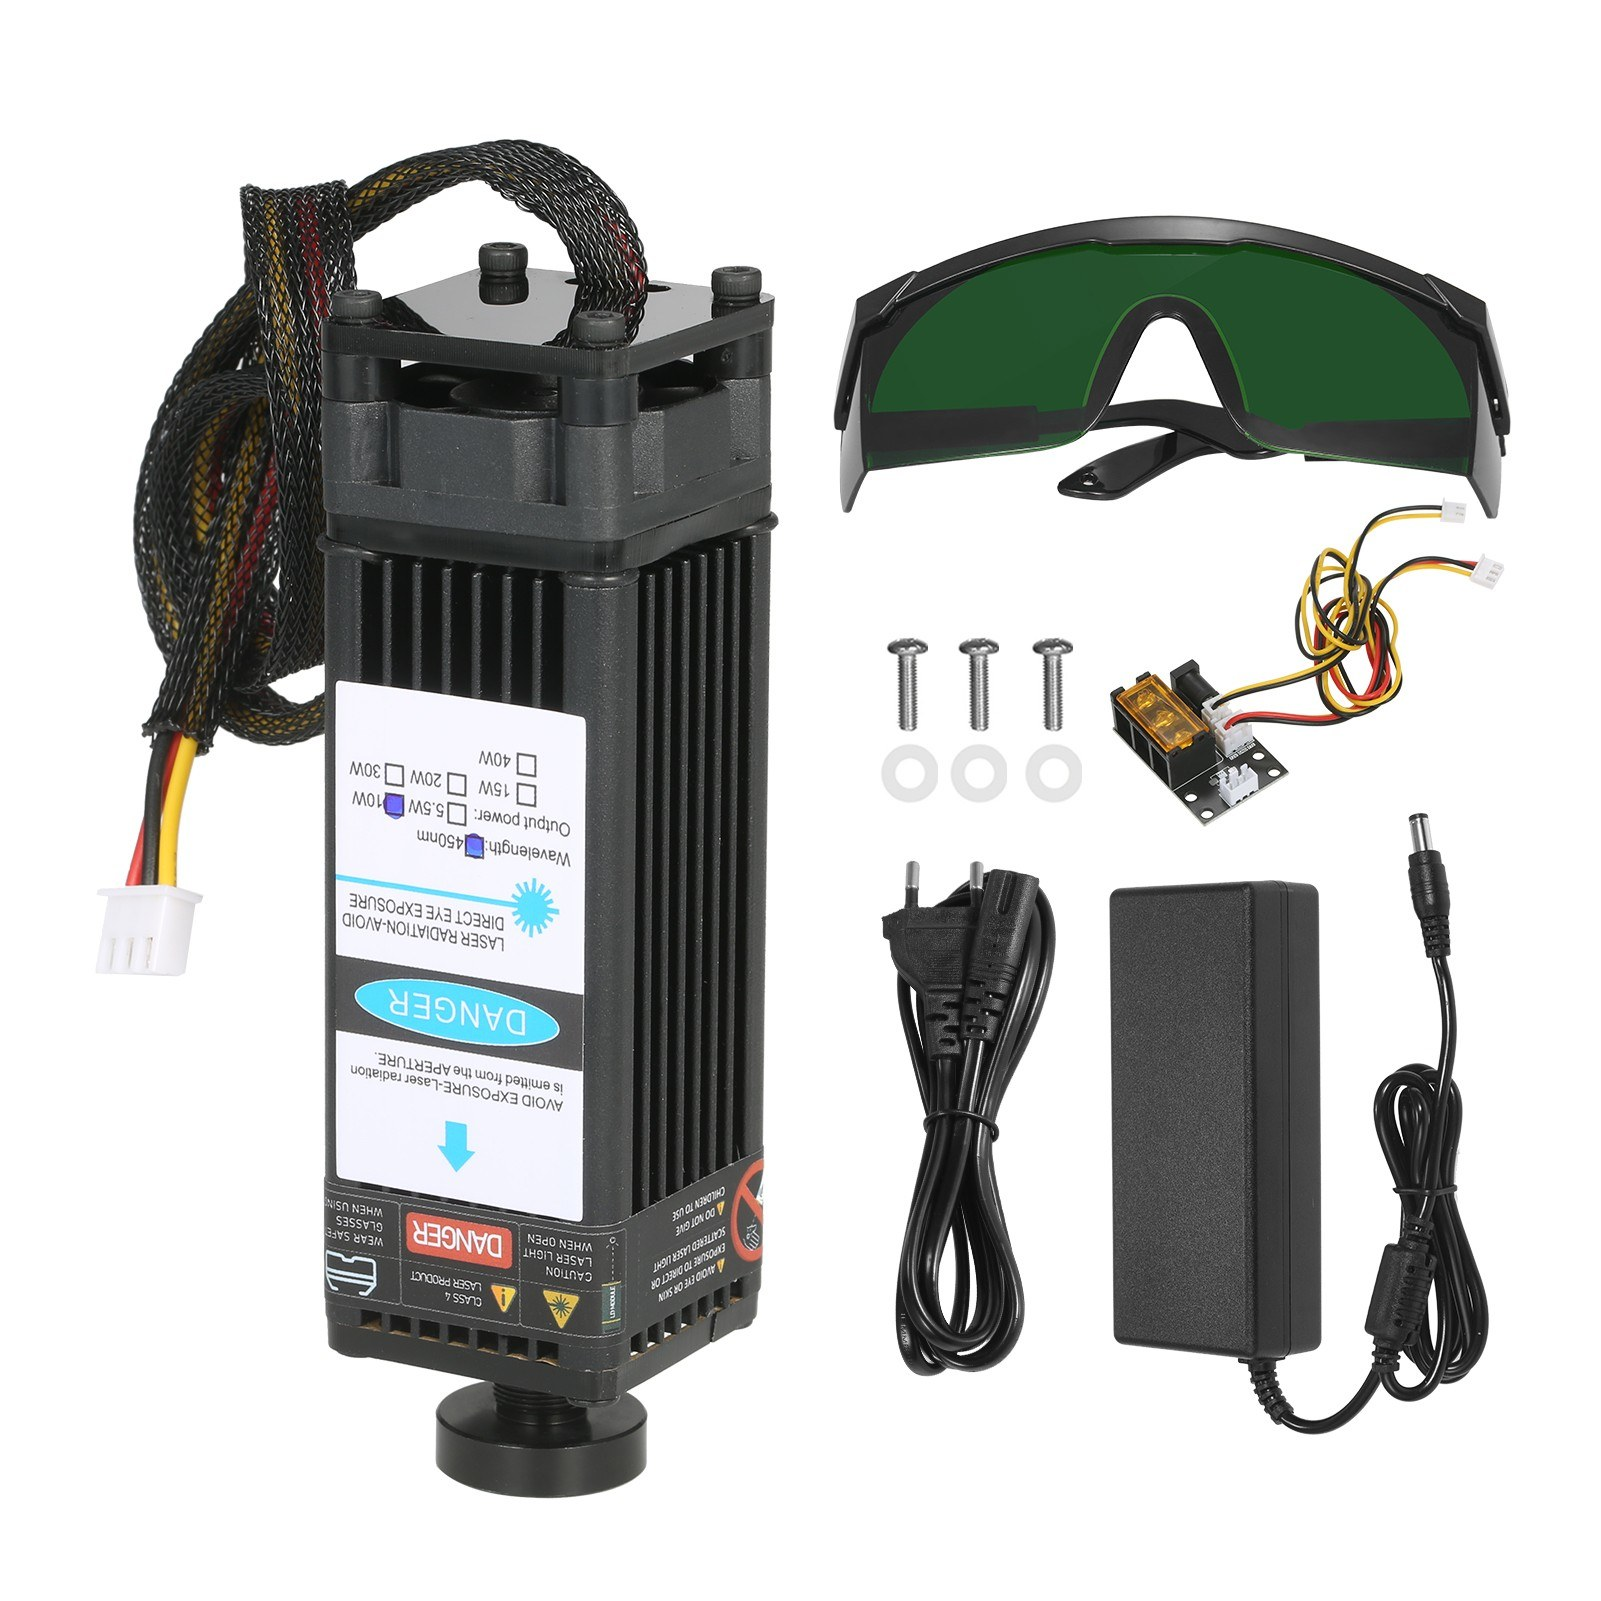 tomtop.com - 33% OFF 10W Laser Module Kit 450nm Blue Laser, Free Shipping $80.99